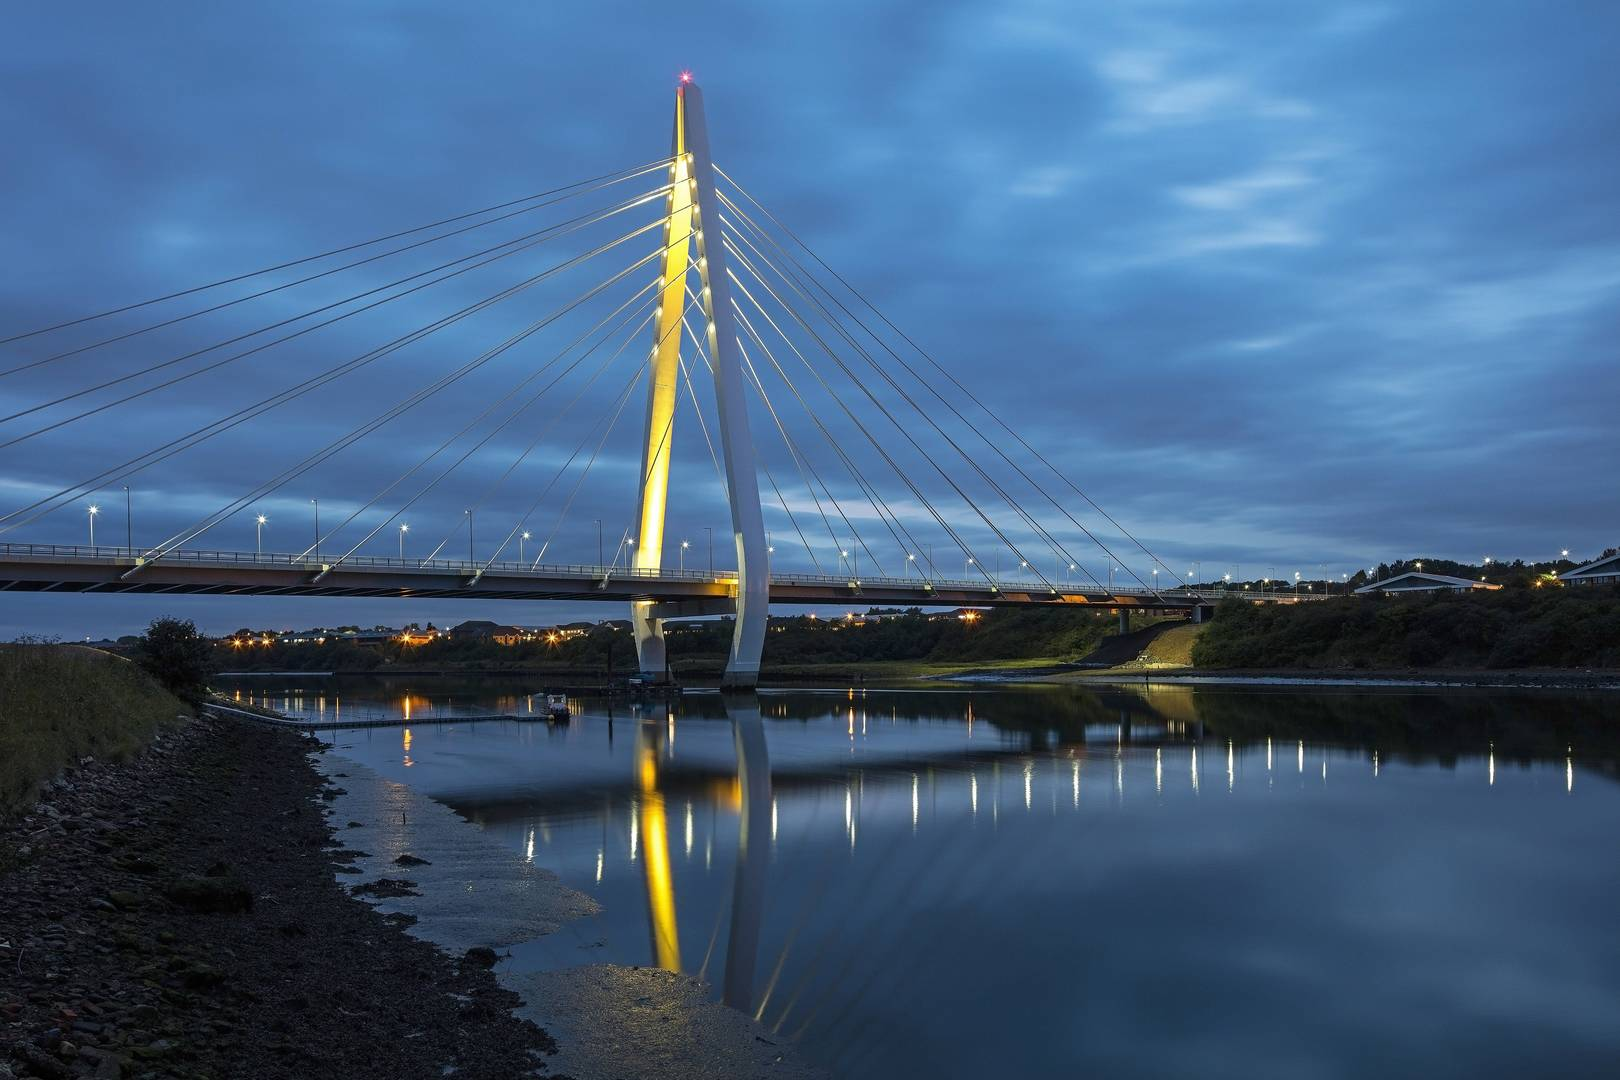 Sunderland: The city's famous Northern Spire